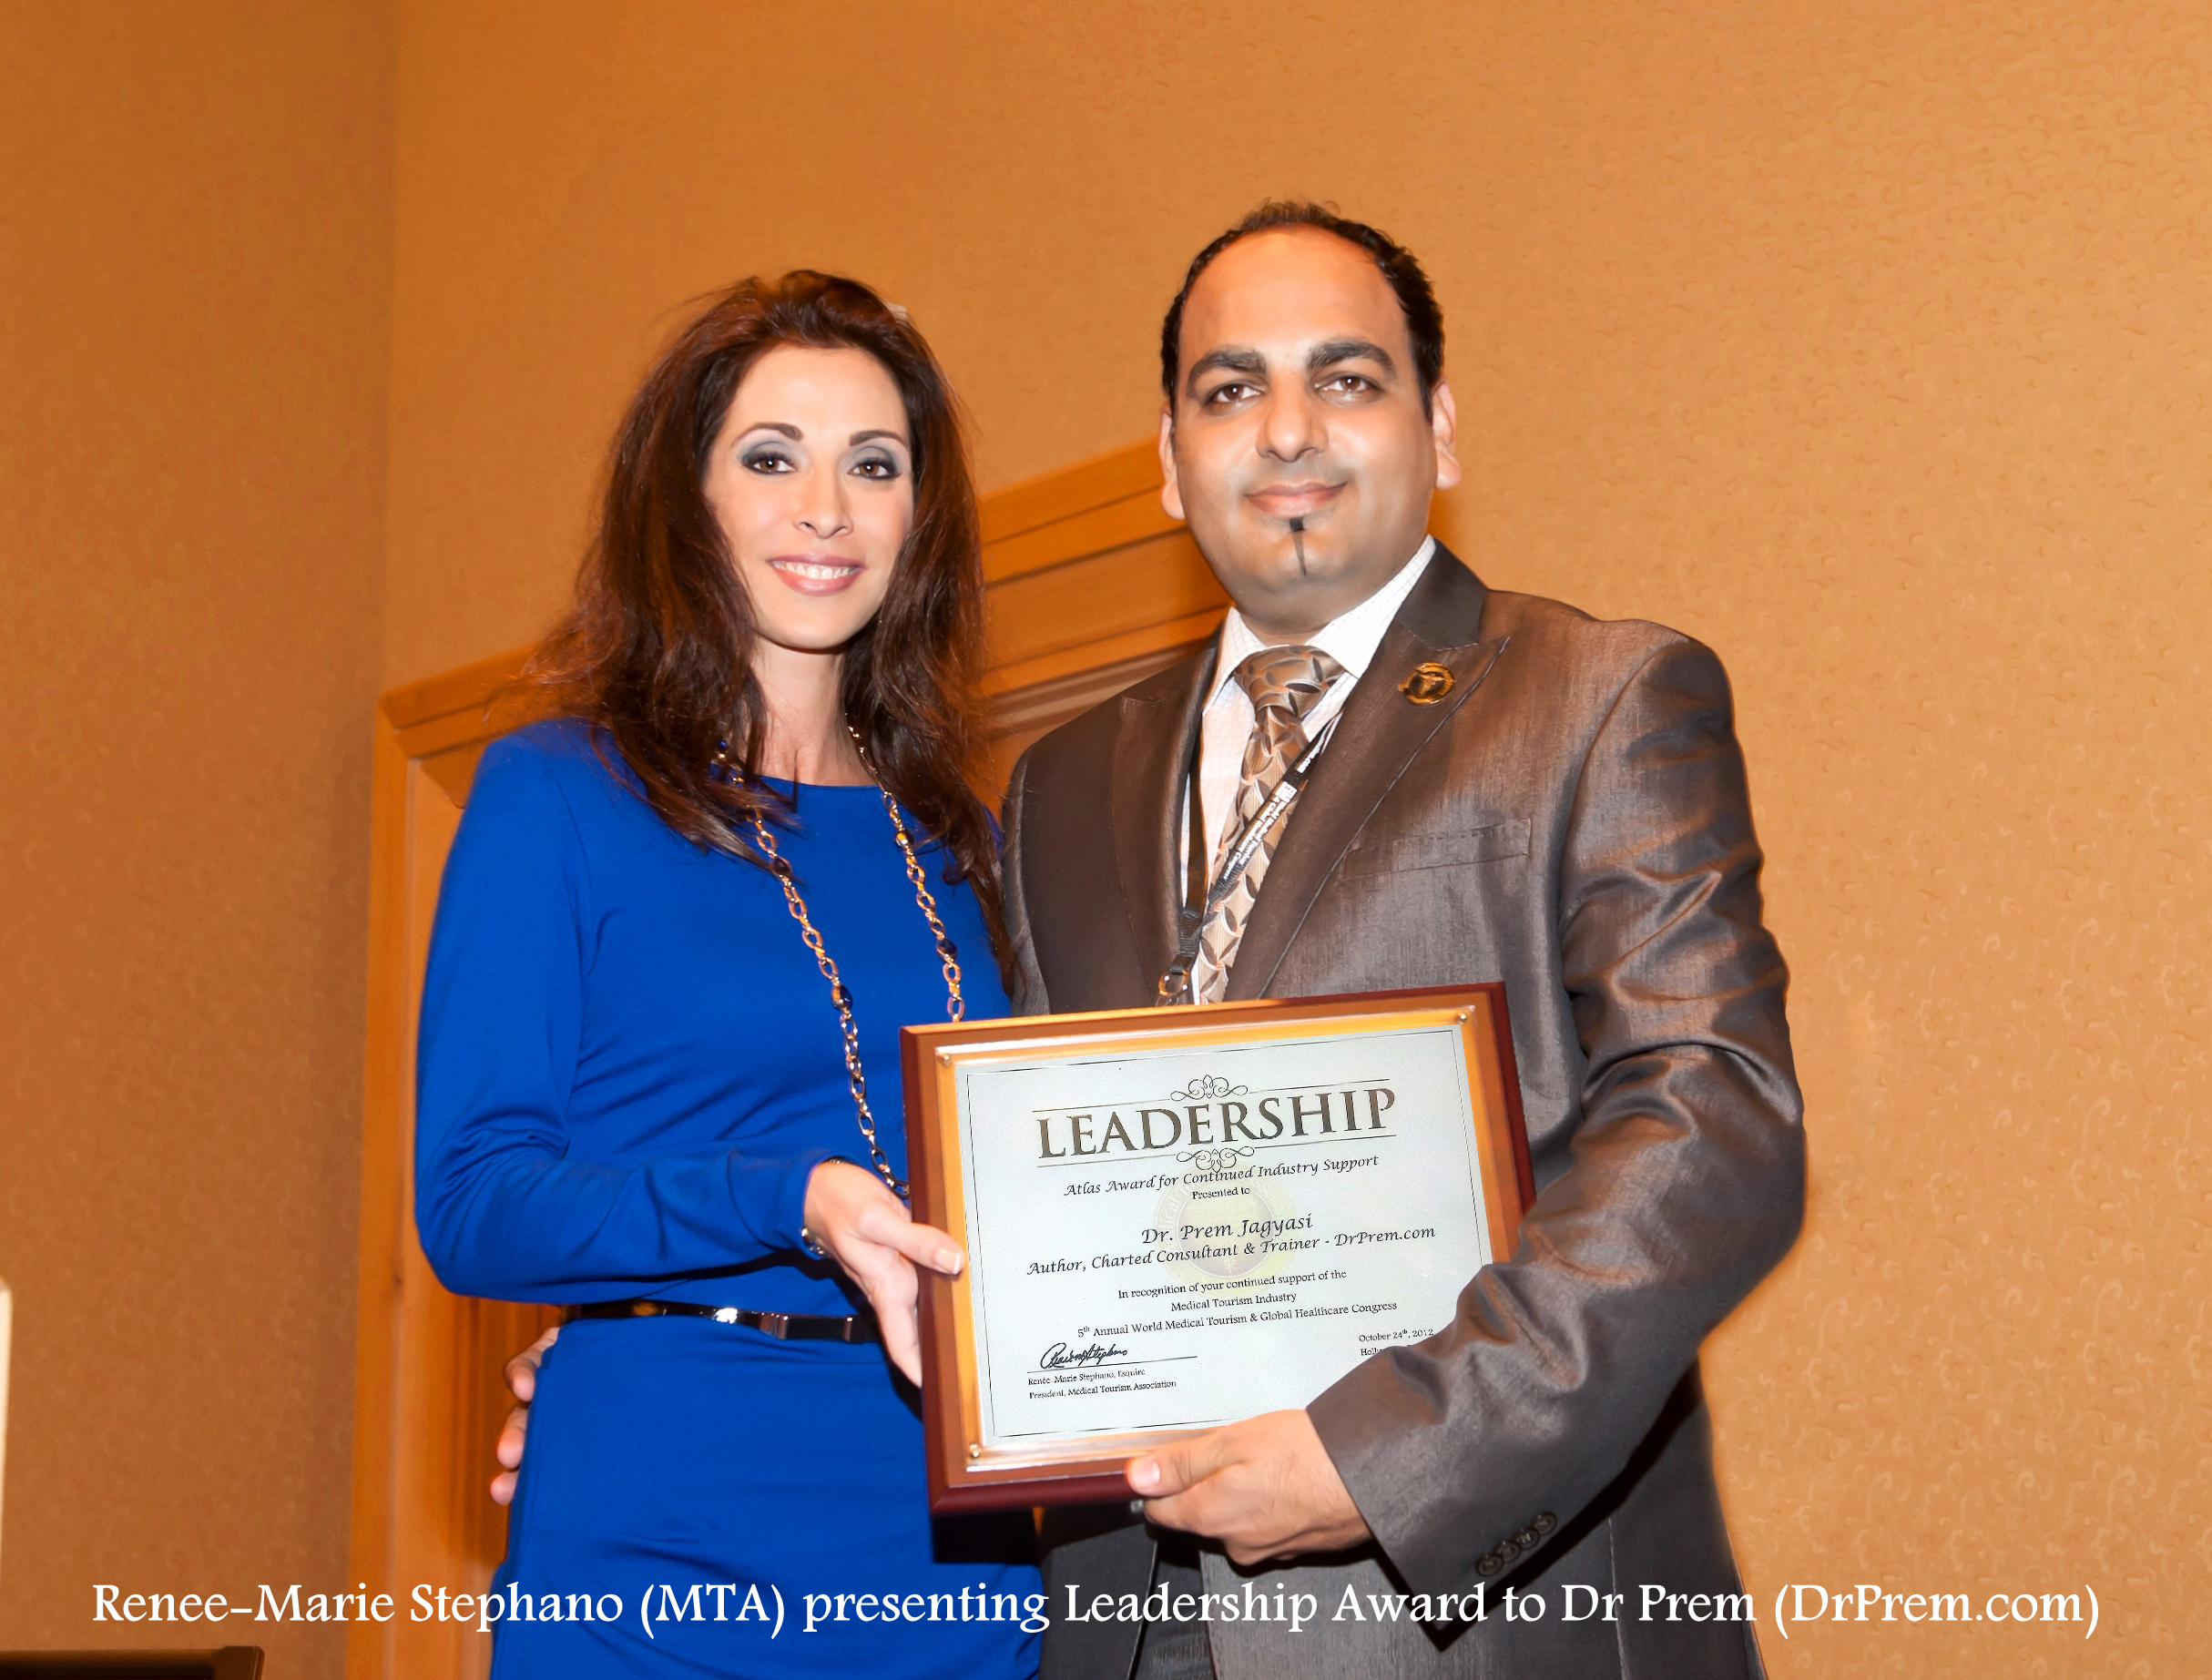 Dr Prem Recieving Leadership Award From Renee-Marie Stephano